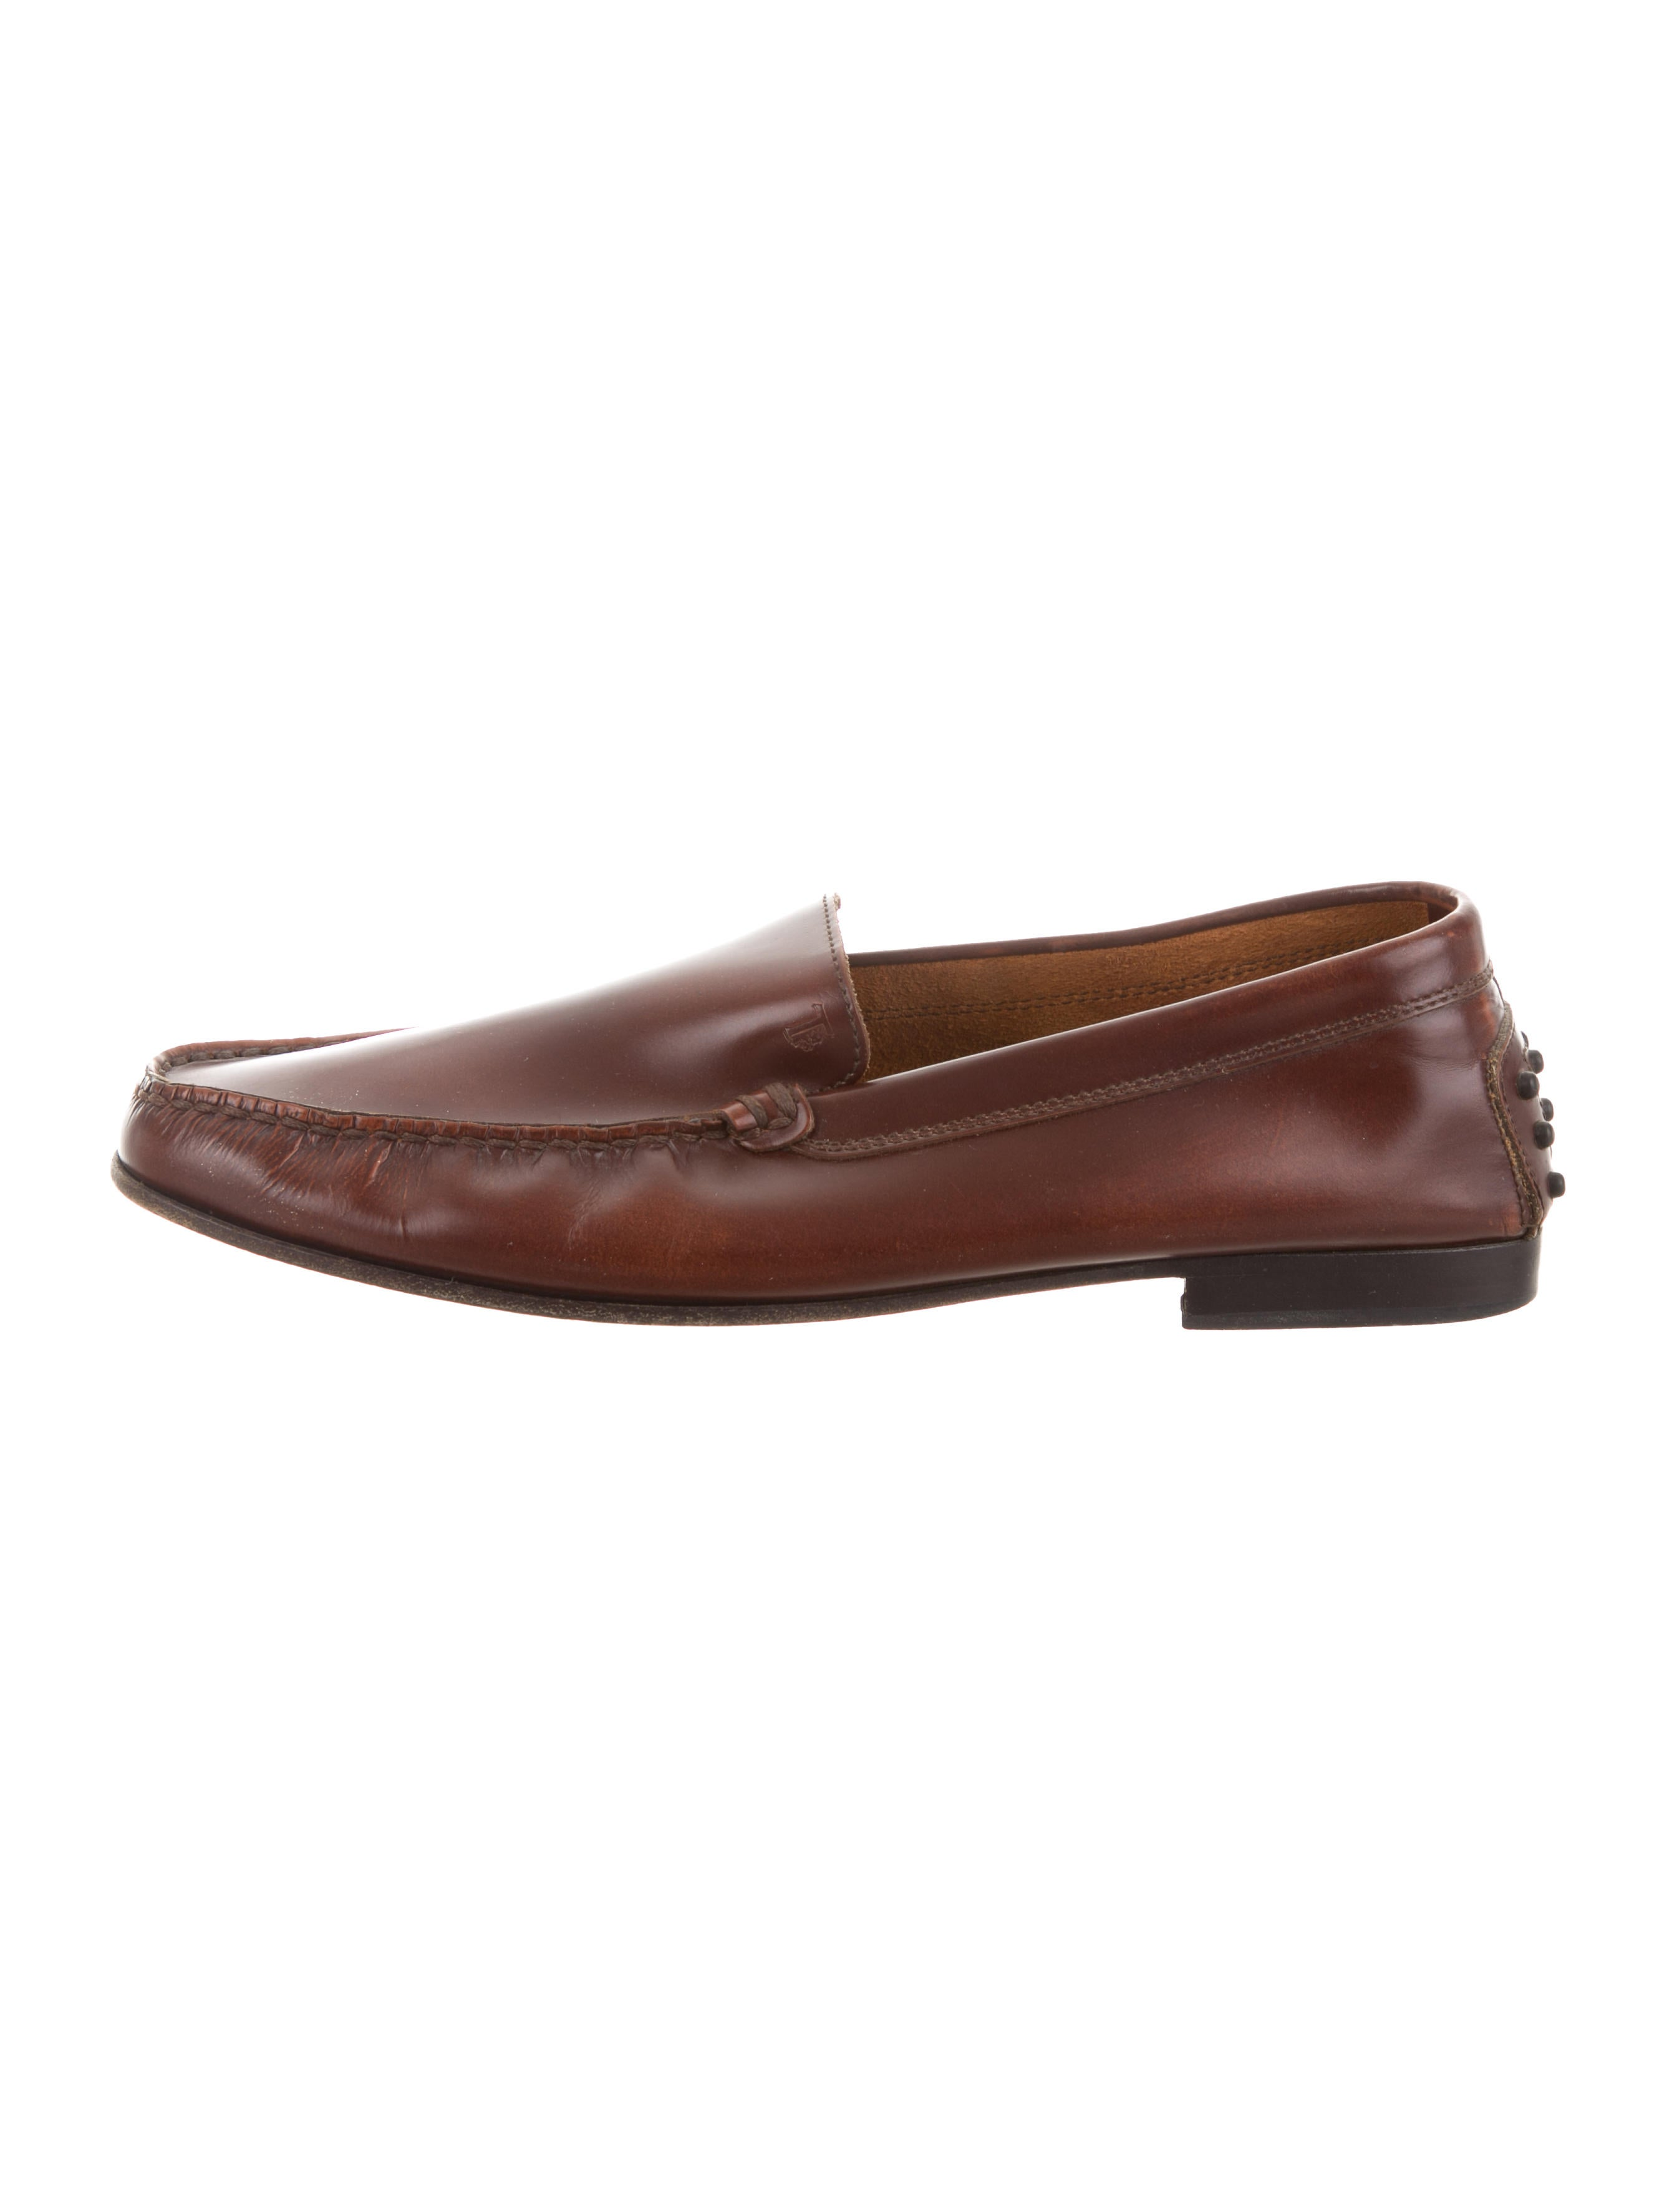 clearance amazing price Tod's Burnished Square-Toe Loafers latest for sale rkuPaFvvg